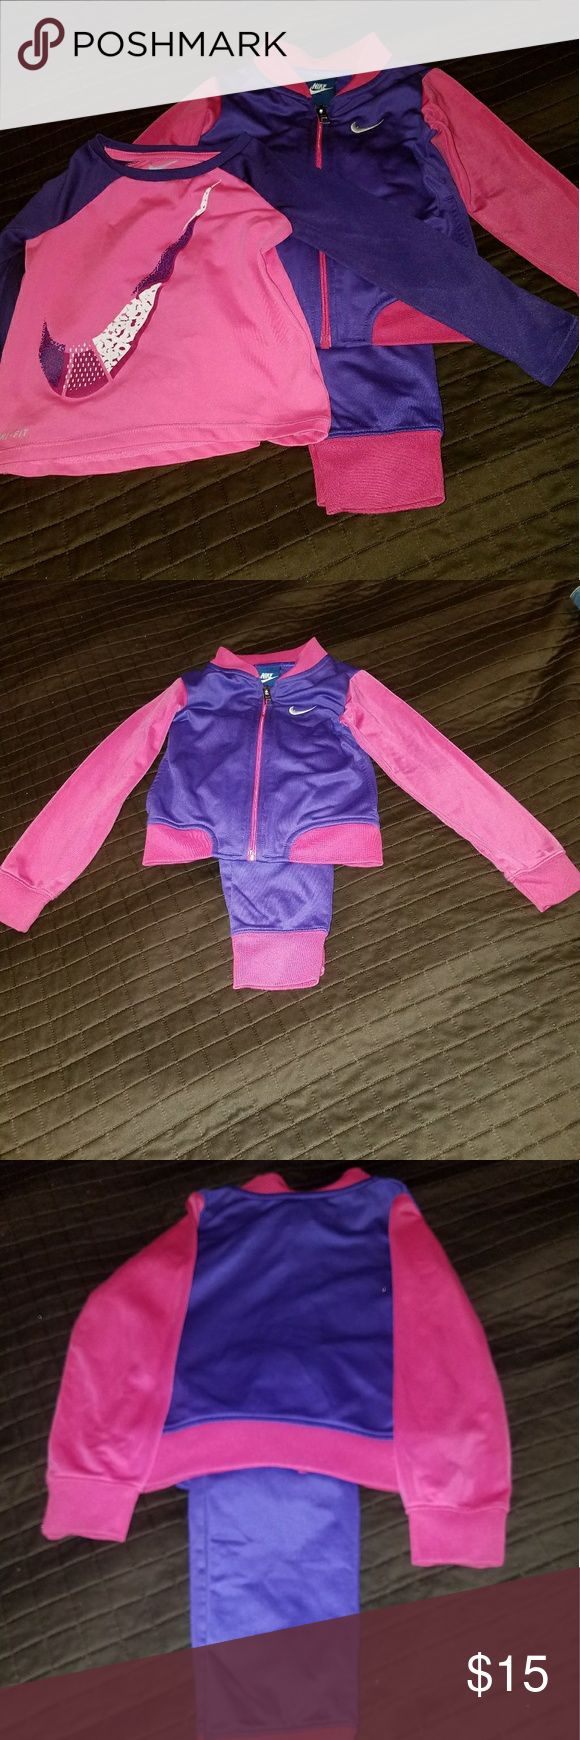 Nike girls warm up suit. Pink and purple girls Nike jogging suit. As a bonus, including the Dri-Fit shirt. EUC Nike Matching Sets